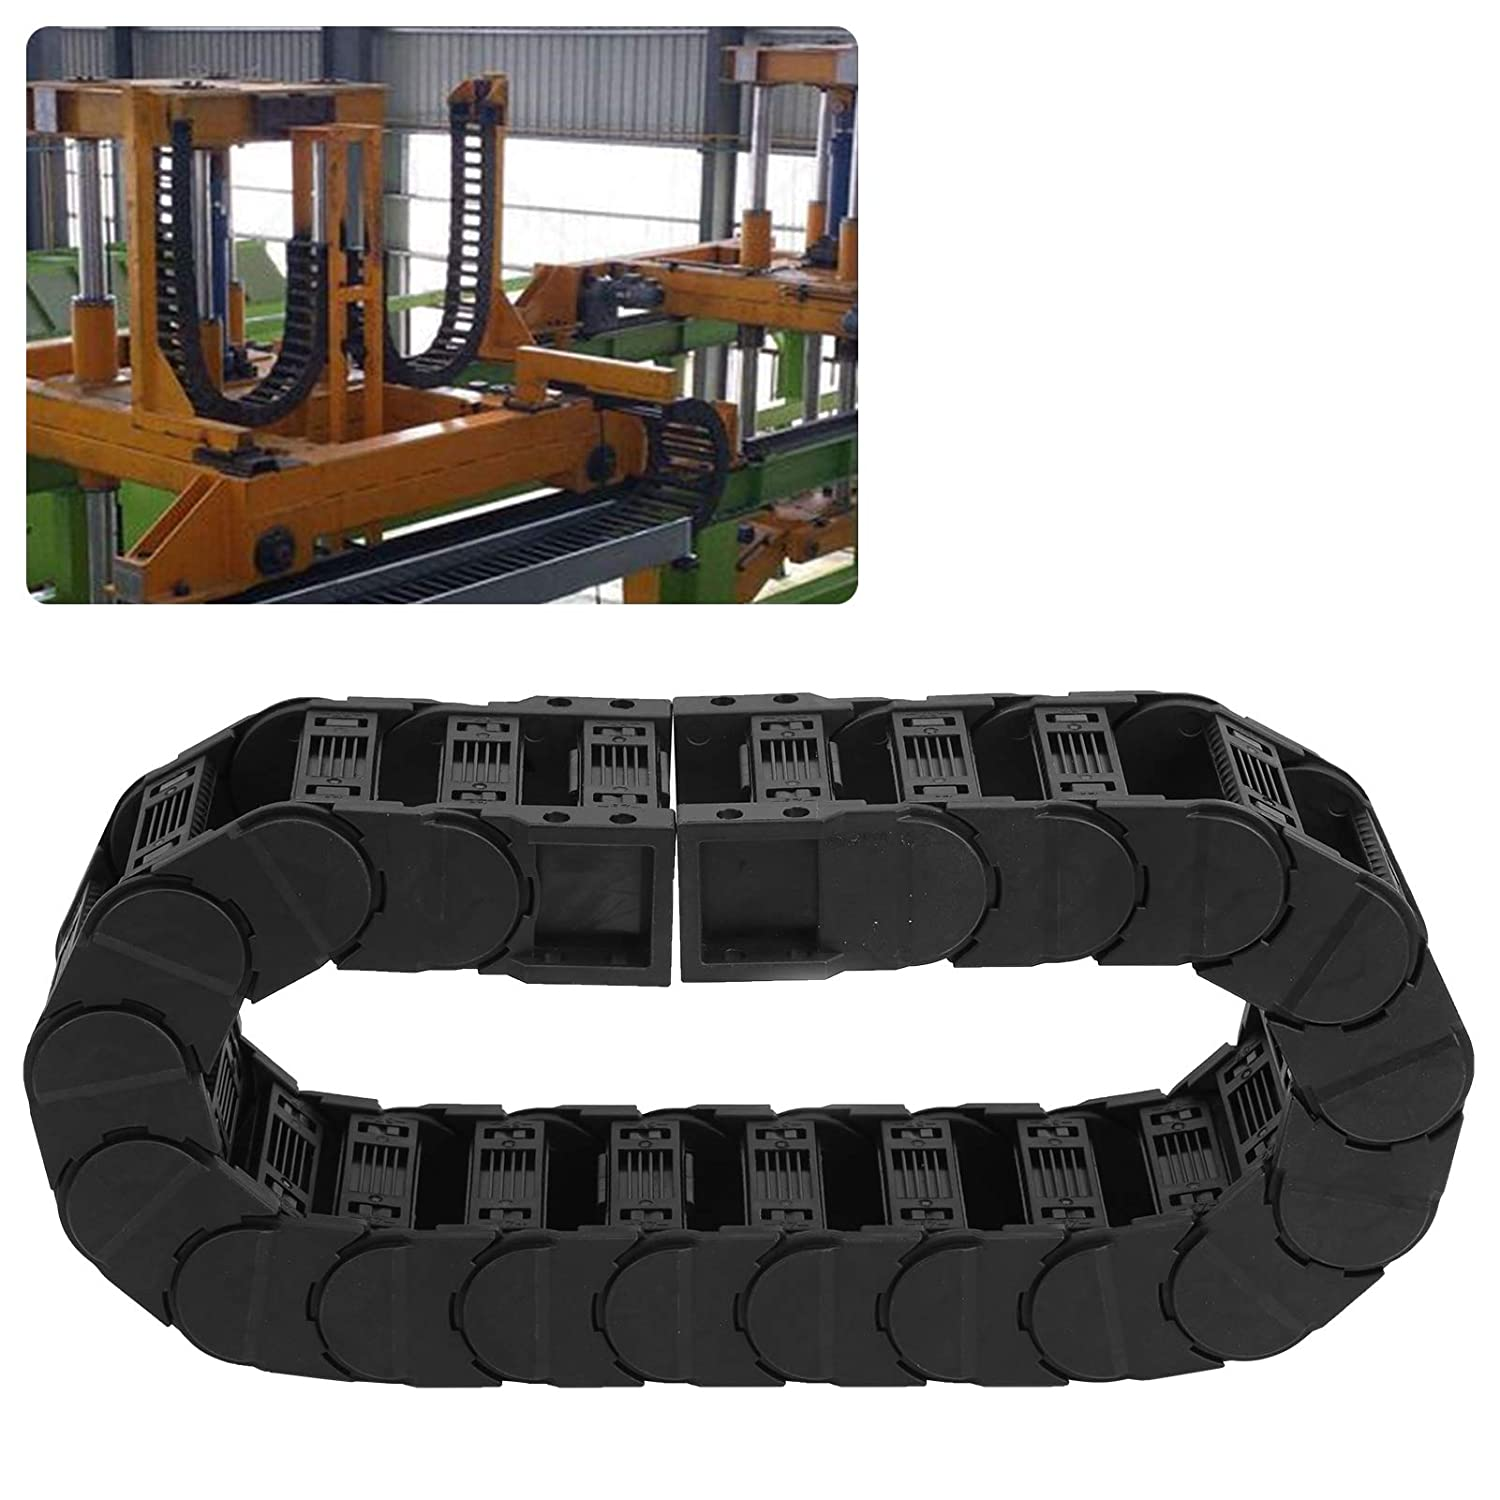 Cable Chain, Drag Chain Kid Proof Glossy with Low Noise for Engi